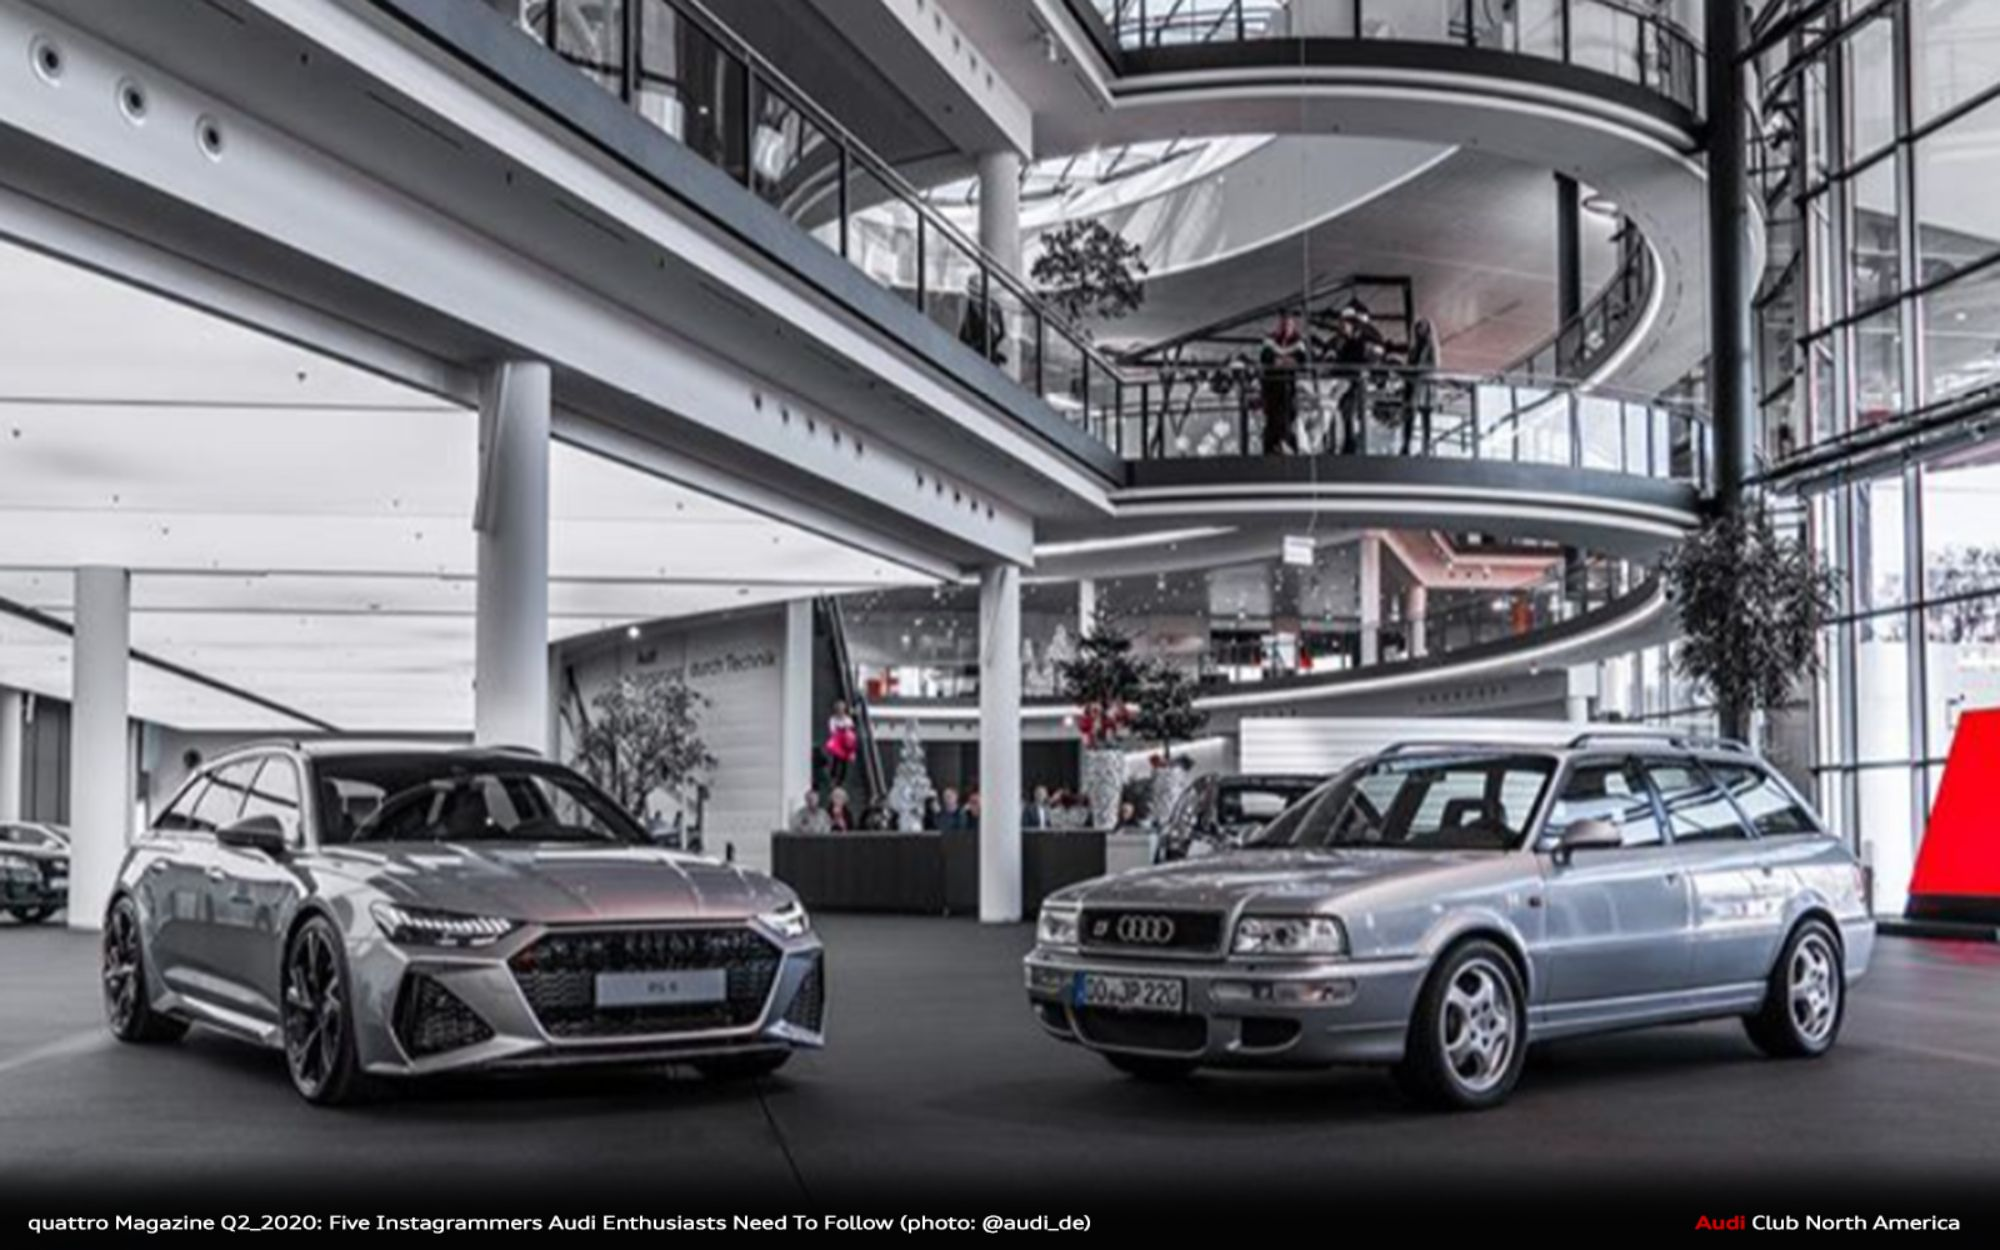 quattro Magazine Q2_2020: Five Instagrammers Audi Enthusiasts Need to Follow